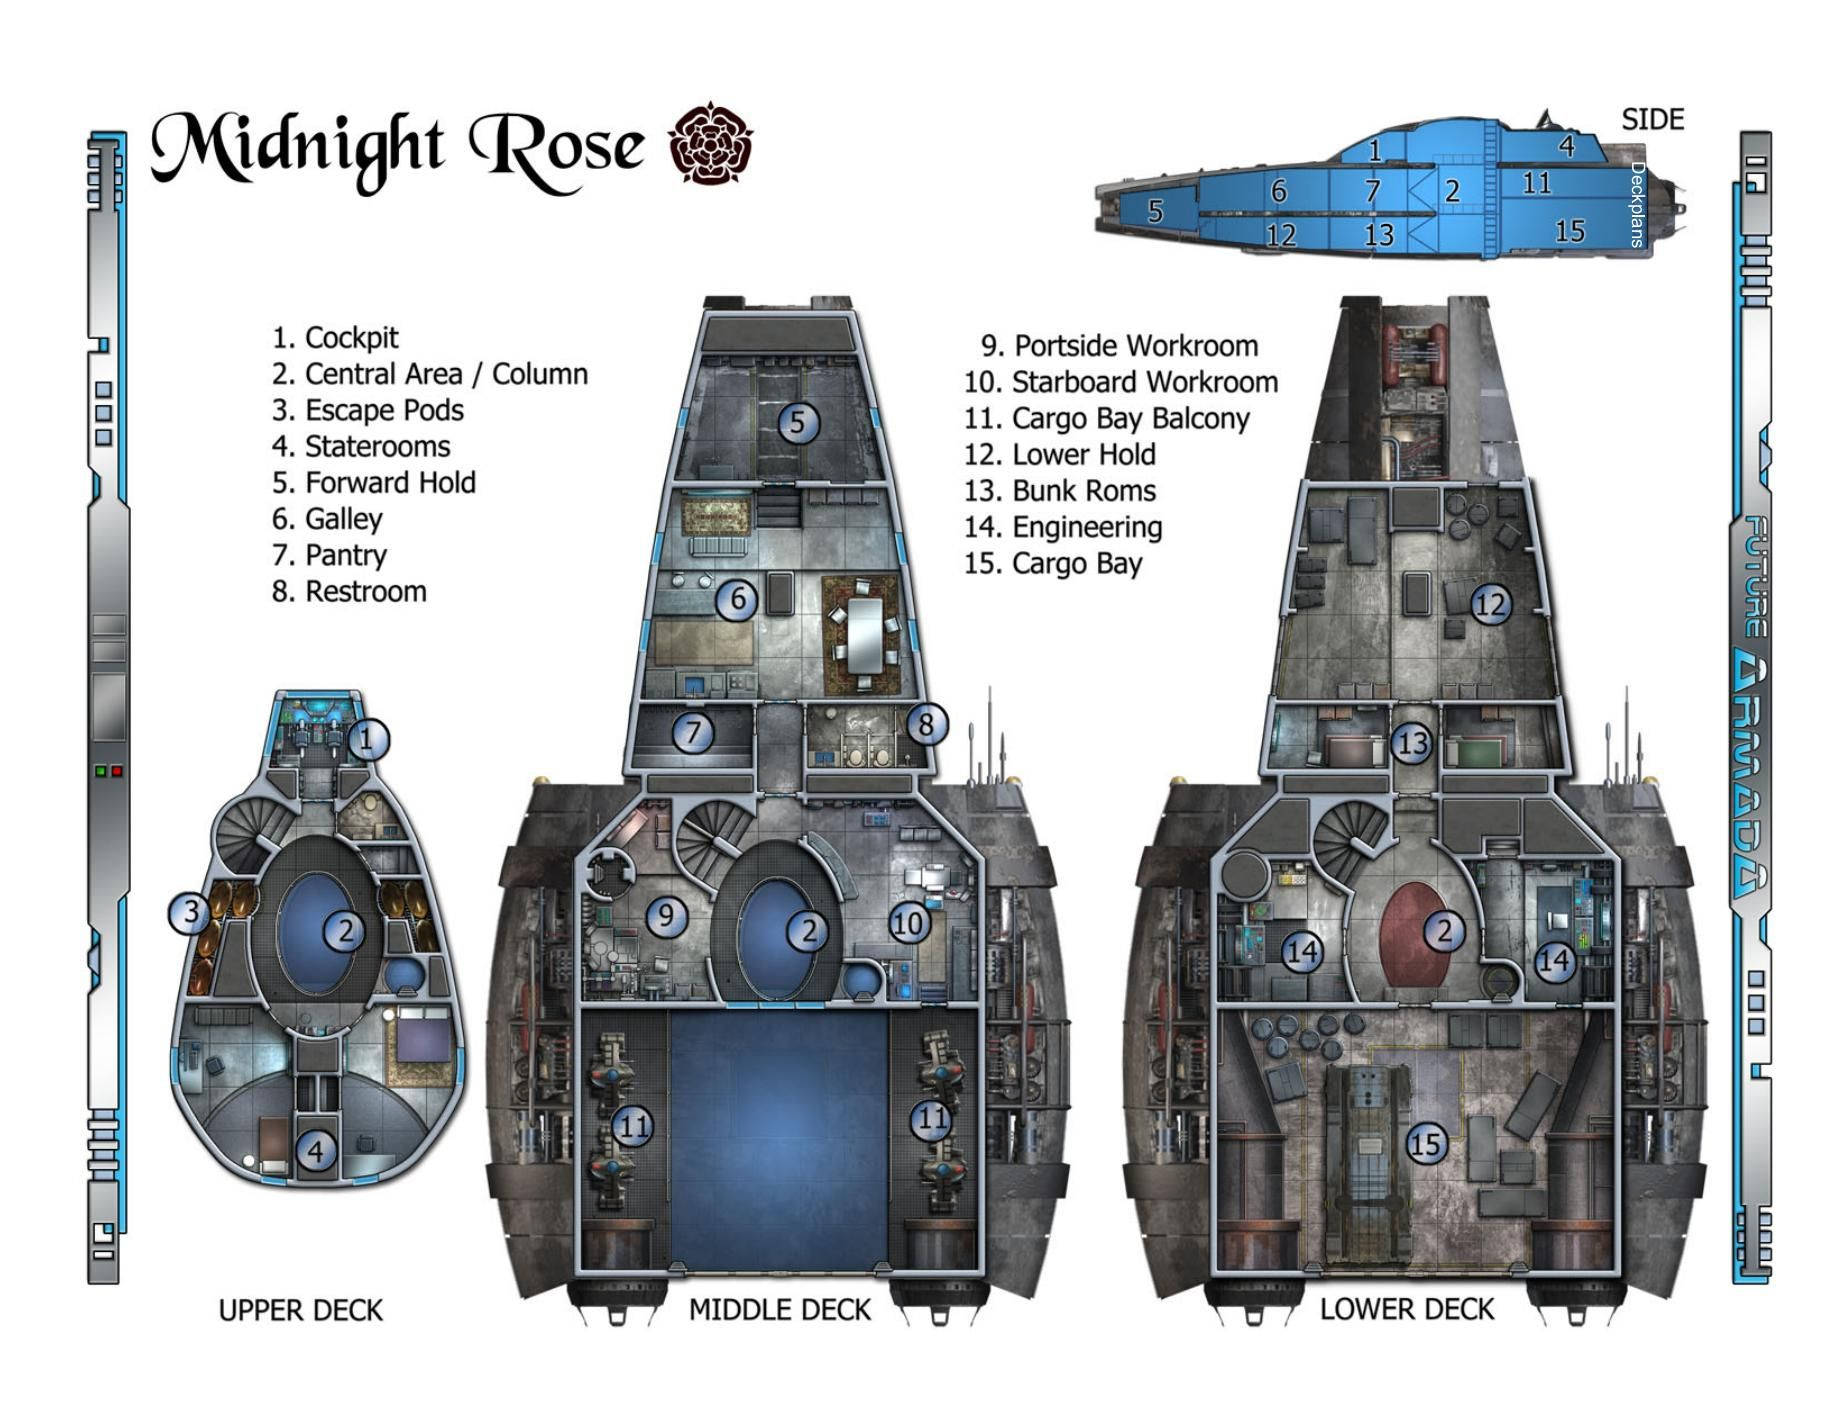 Serenity Rpg Ship Layout Floor plans Main deck plans ...